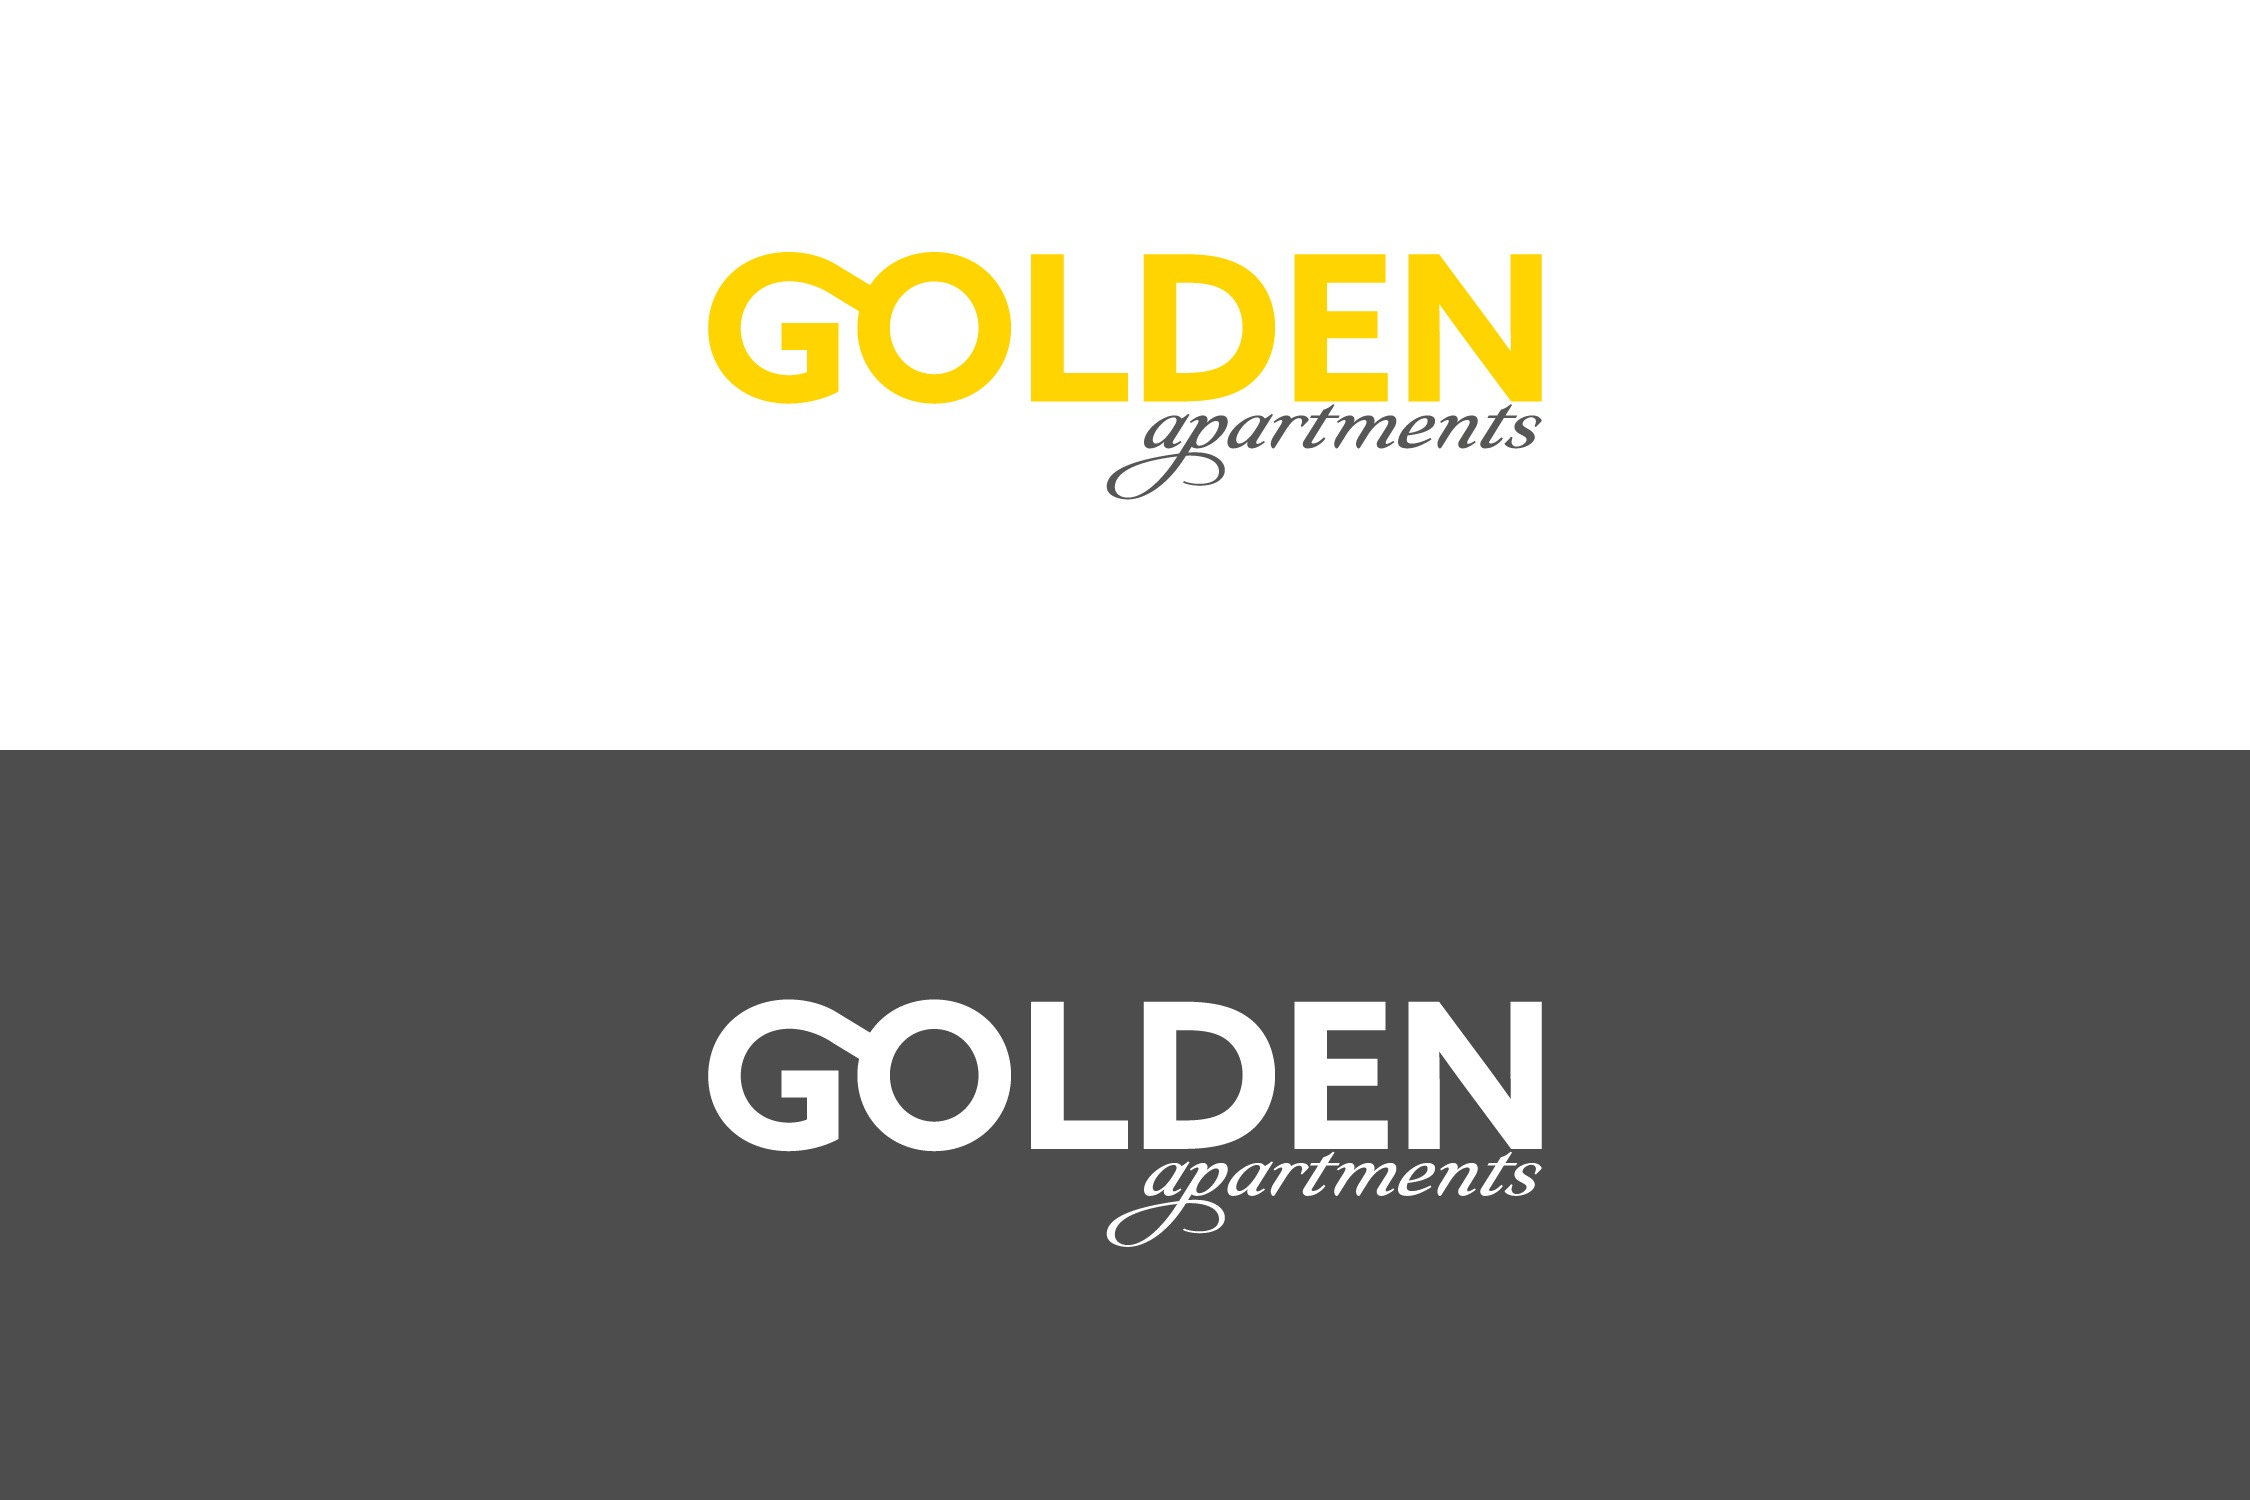 https://www.goldenapartments.com.pl/pl/